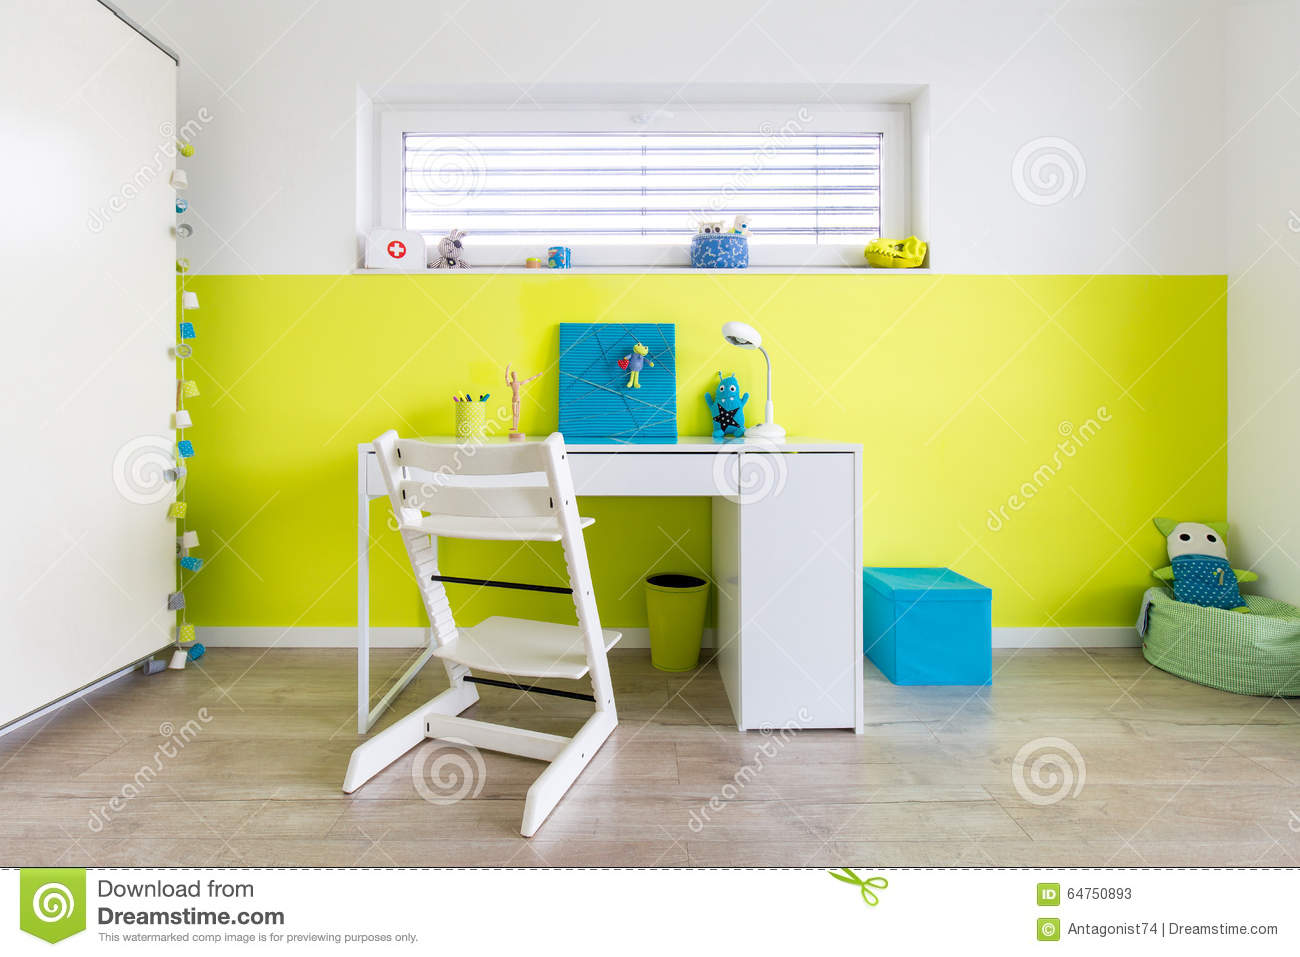 la salle de jeux des enfants avec le bureau photo stock image 64750893. Black Bedroom Furniture Sets. Home Design Ideas